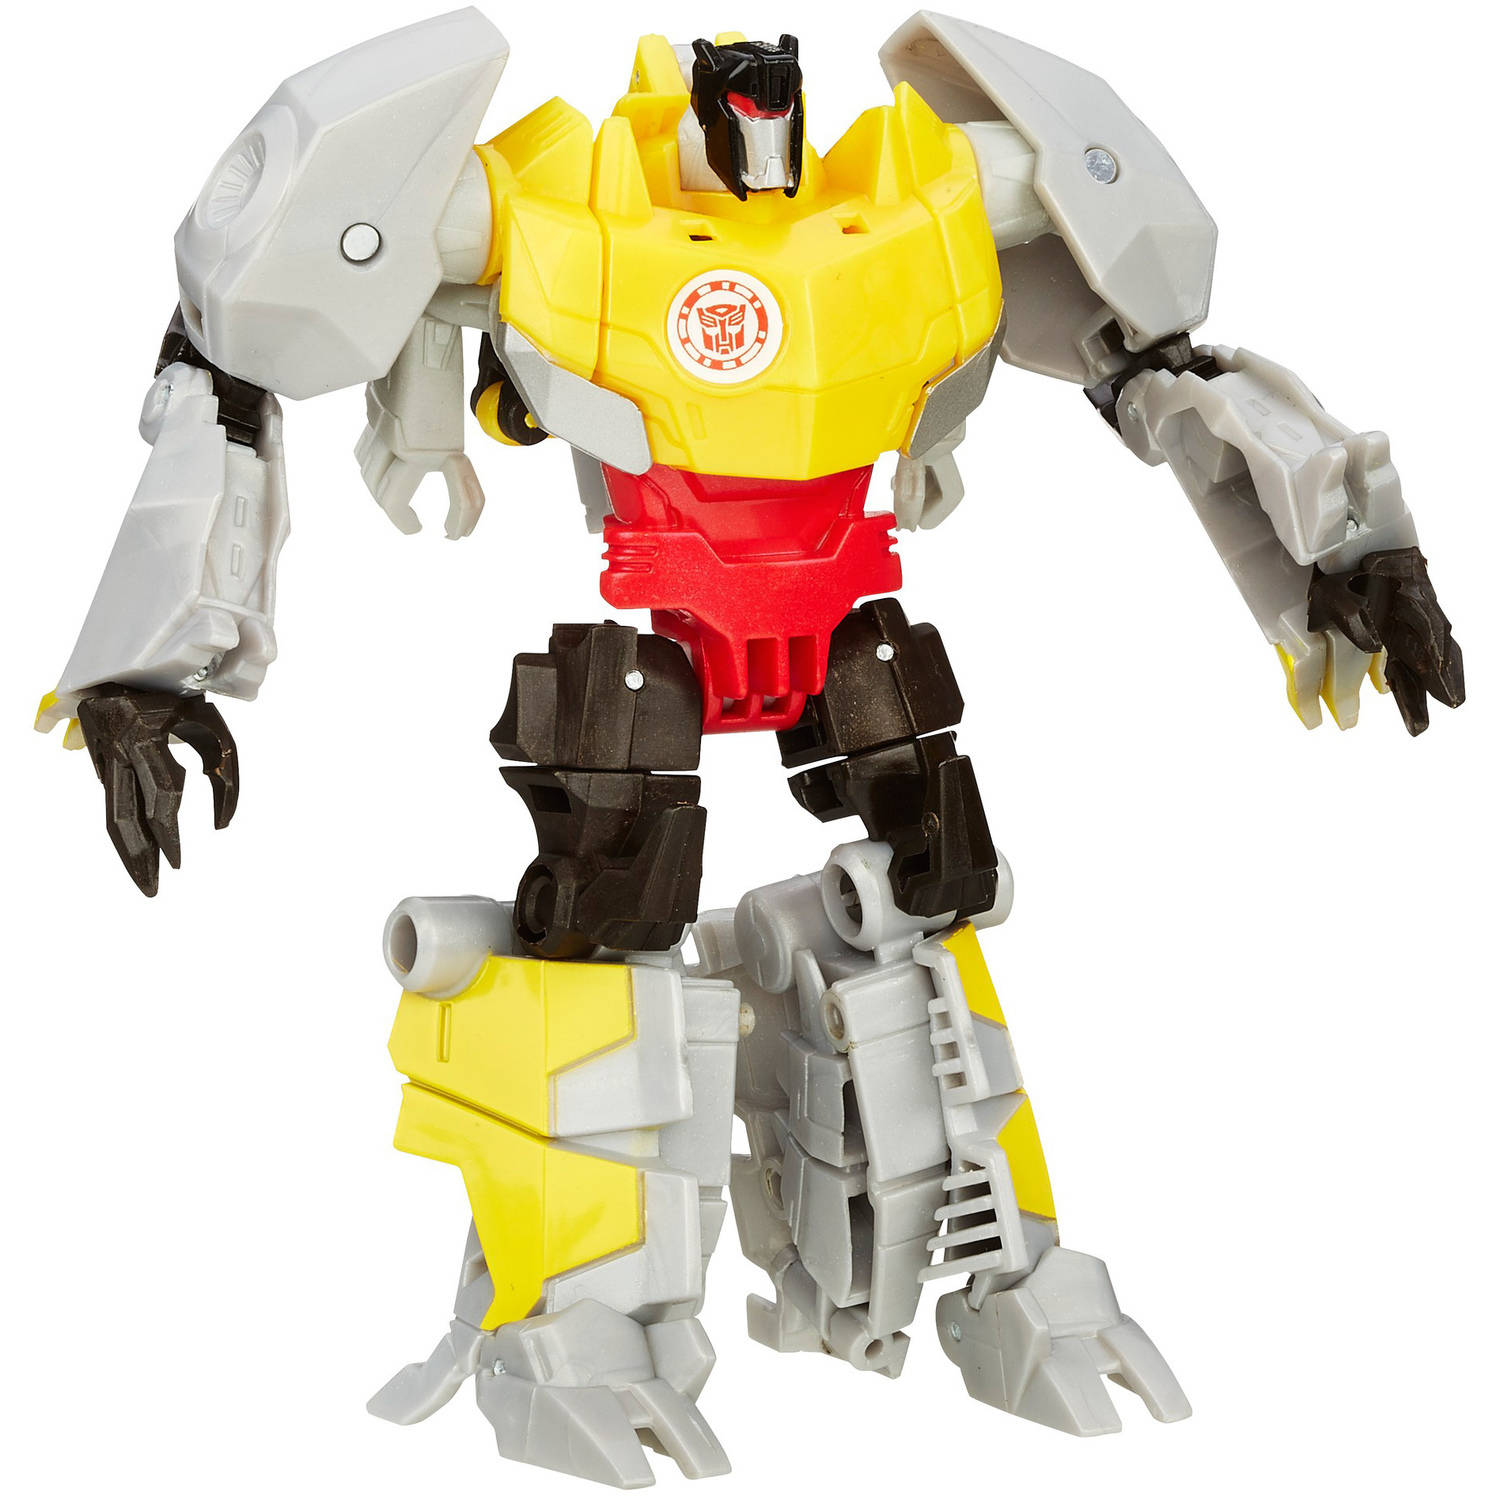 Transformers Robots in Disguise Warrior Class Gold Armor Grimlock Figure by Hasbro